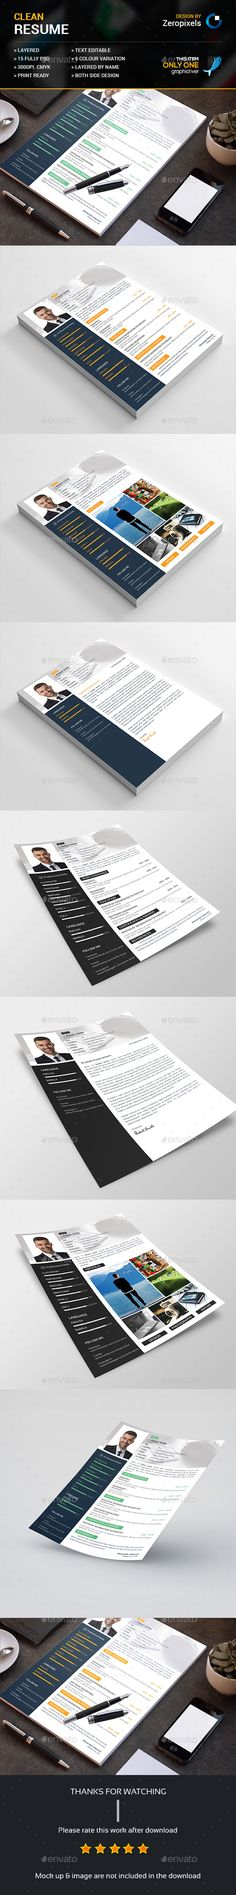 CV Resume Job letter, Psd templates and Cv resume template - net resume